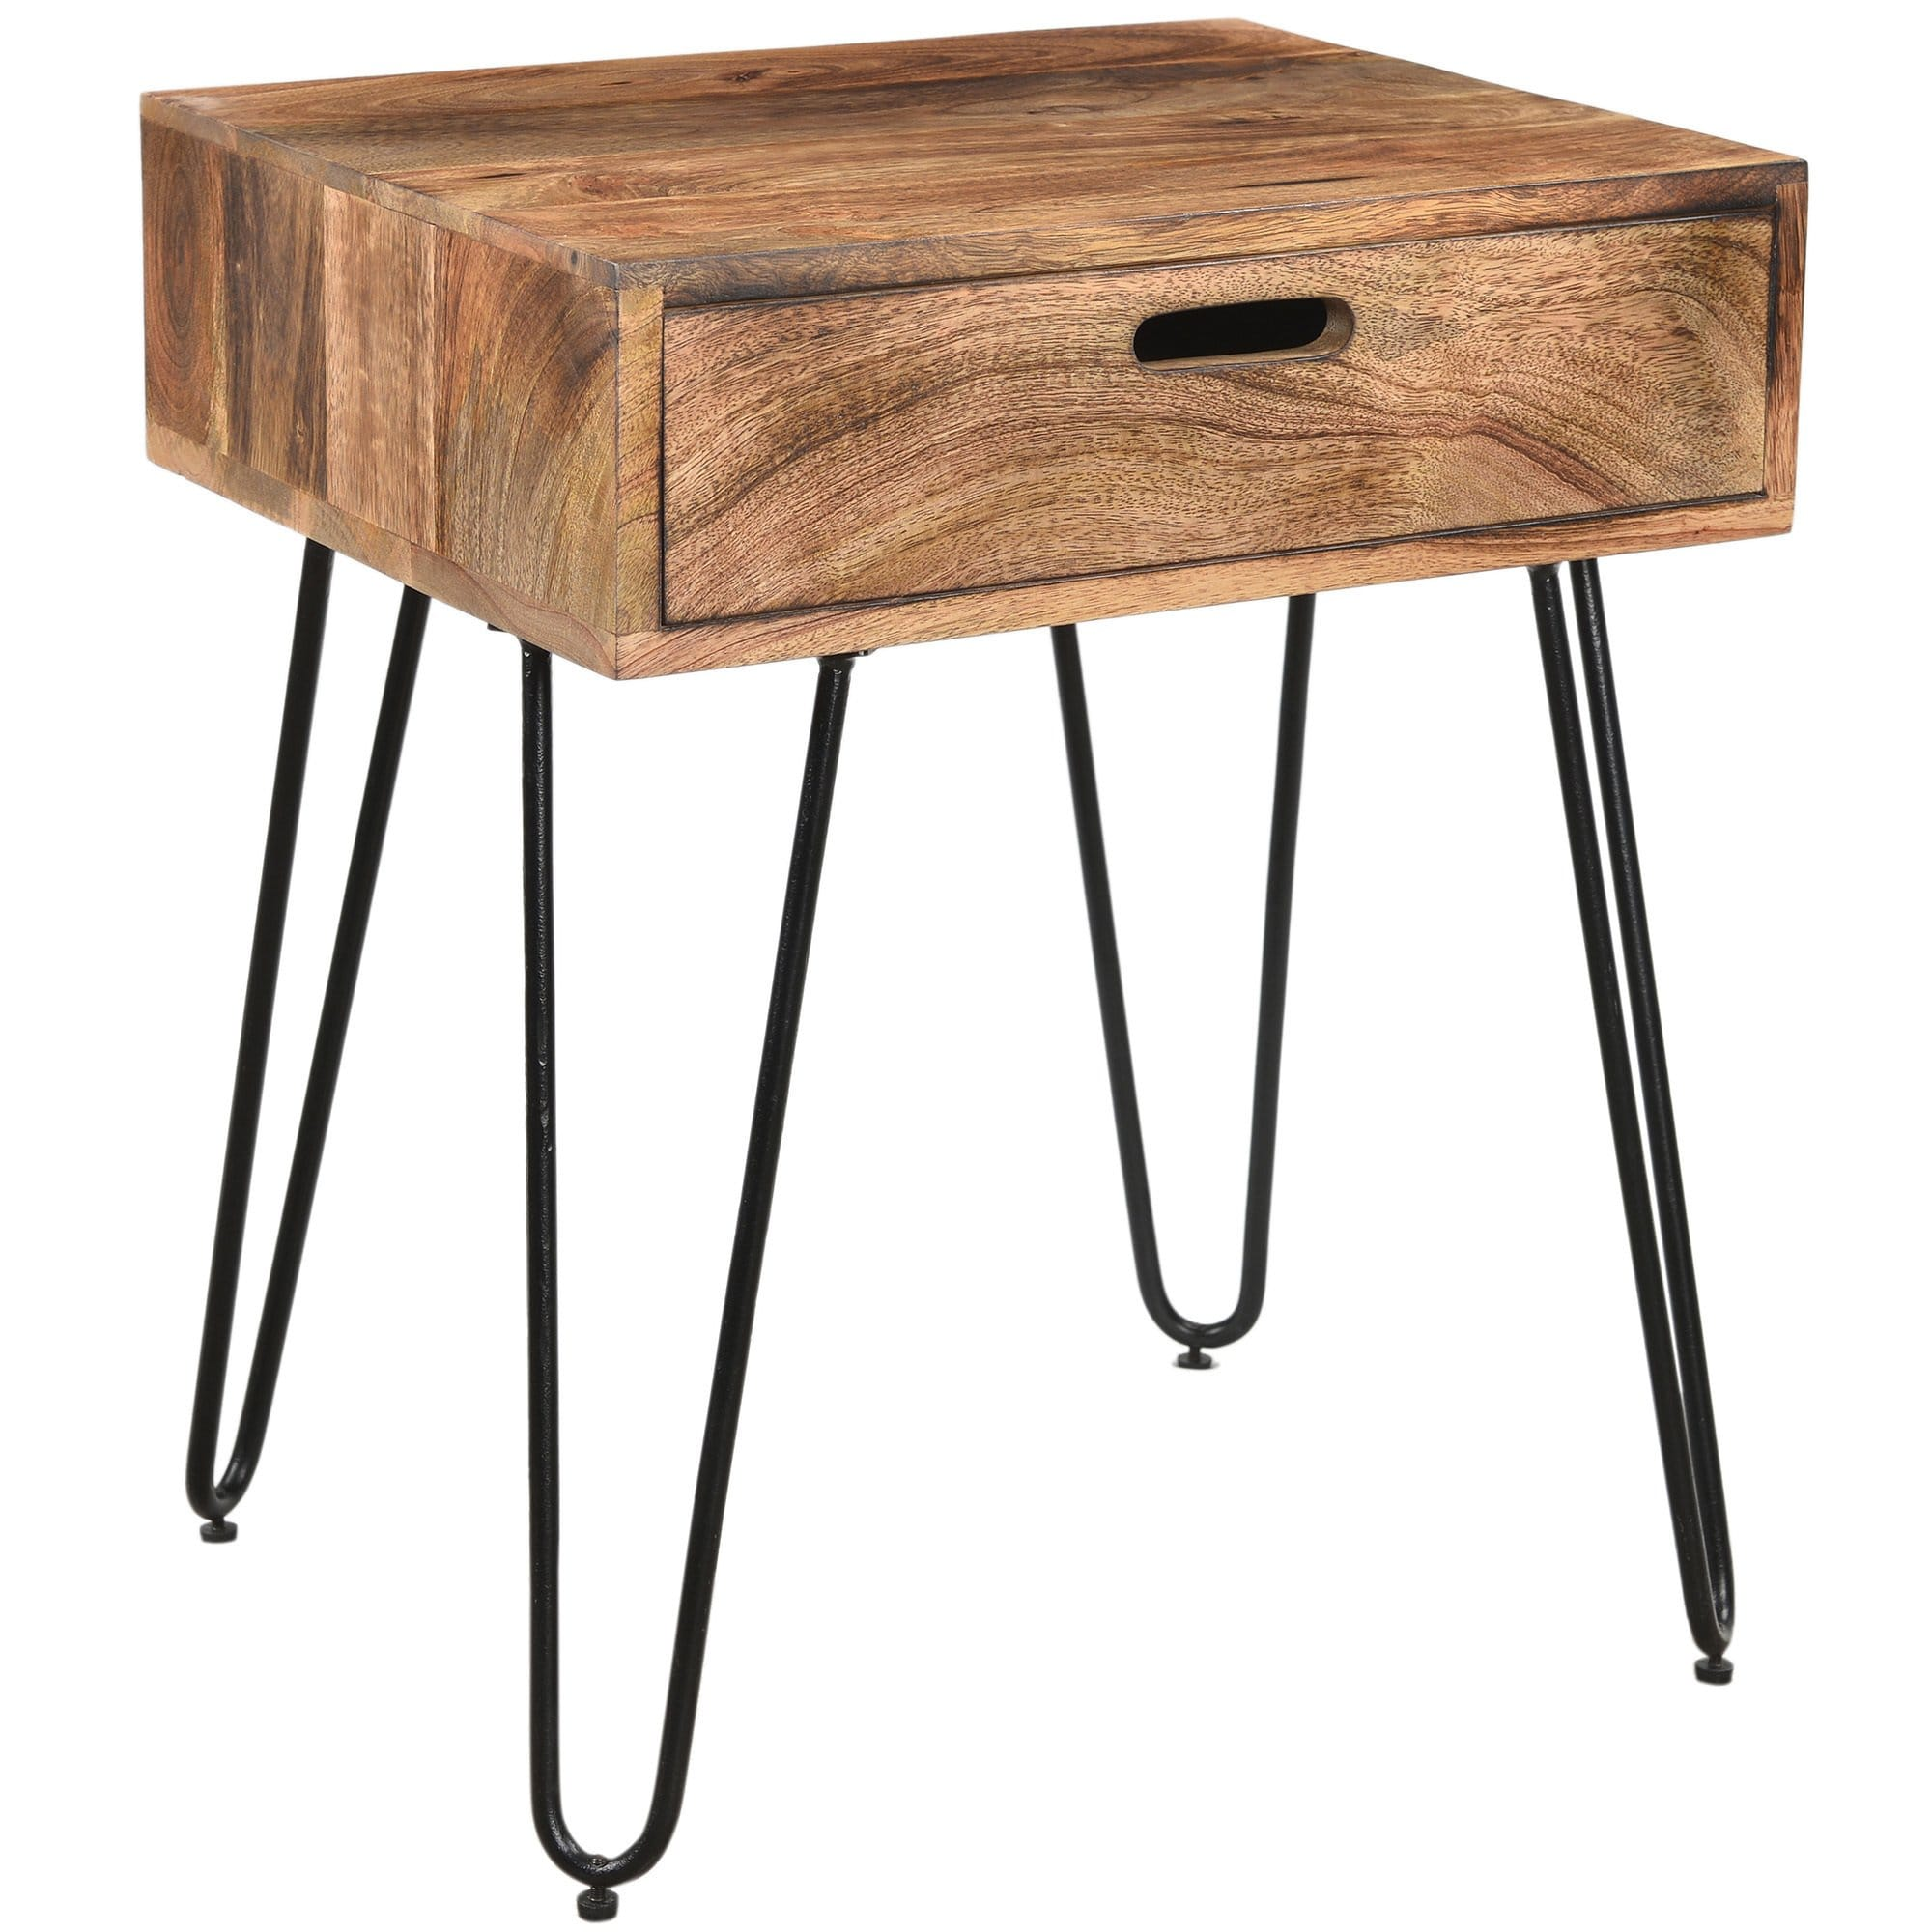 jaydo natural burnt solid mango wood black iron accent table seater dining pub style height colorful lamps astoria leather sofa white dresser oak floor threshold skinny coffee